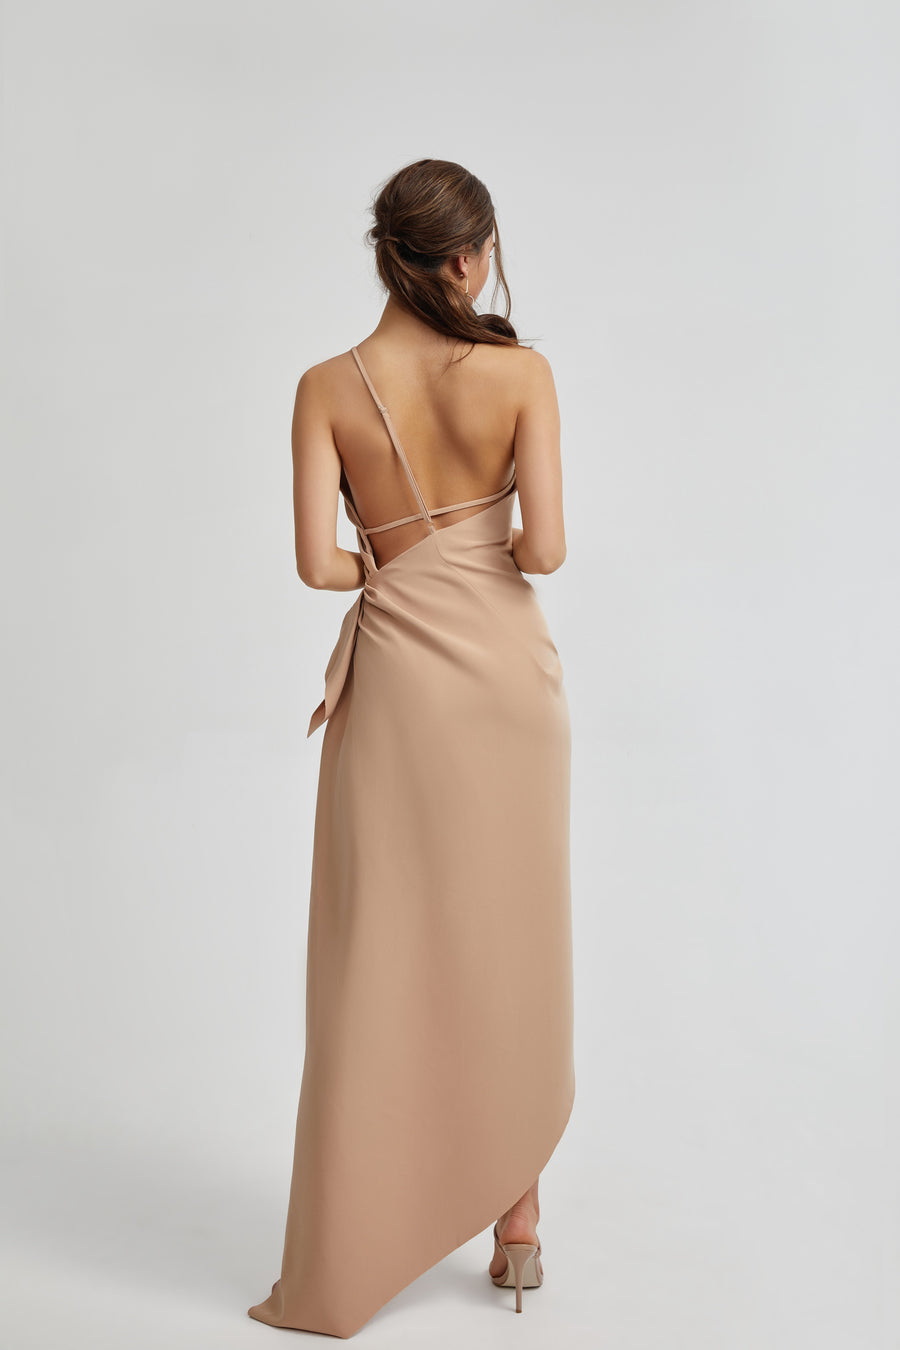 Kalisha Dress - Nude